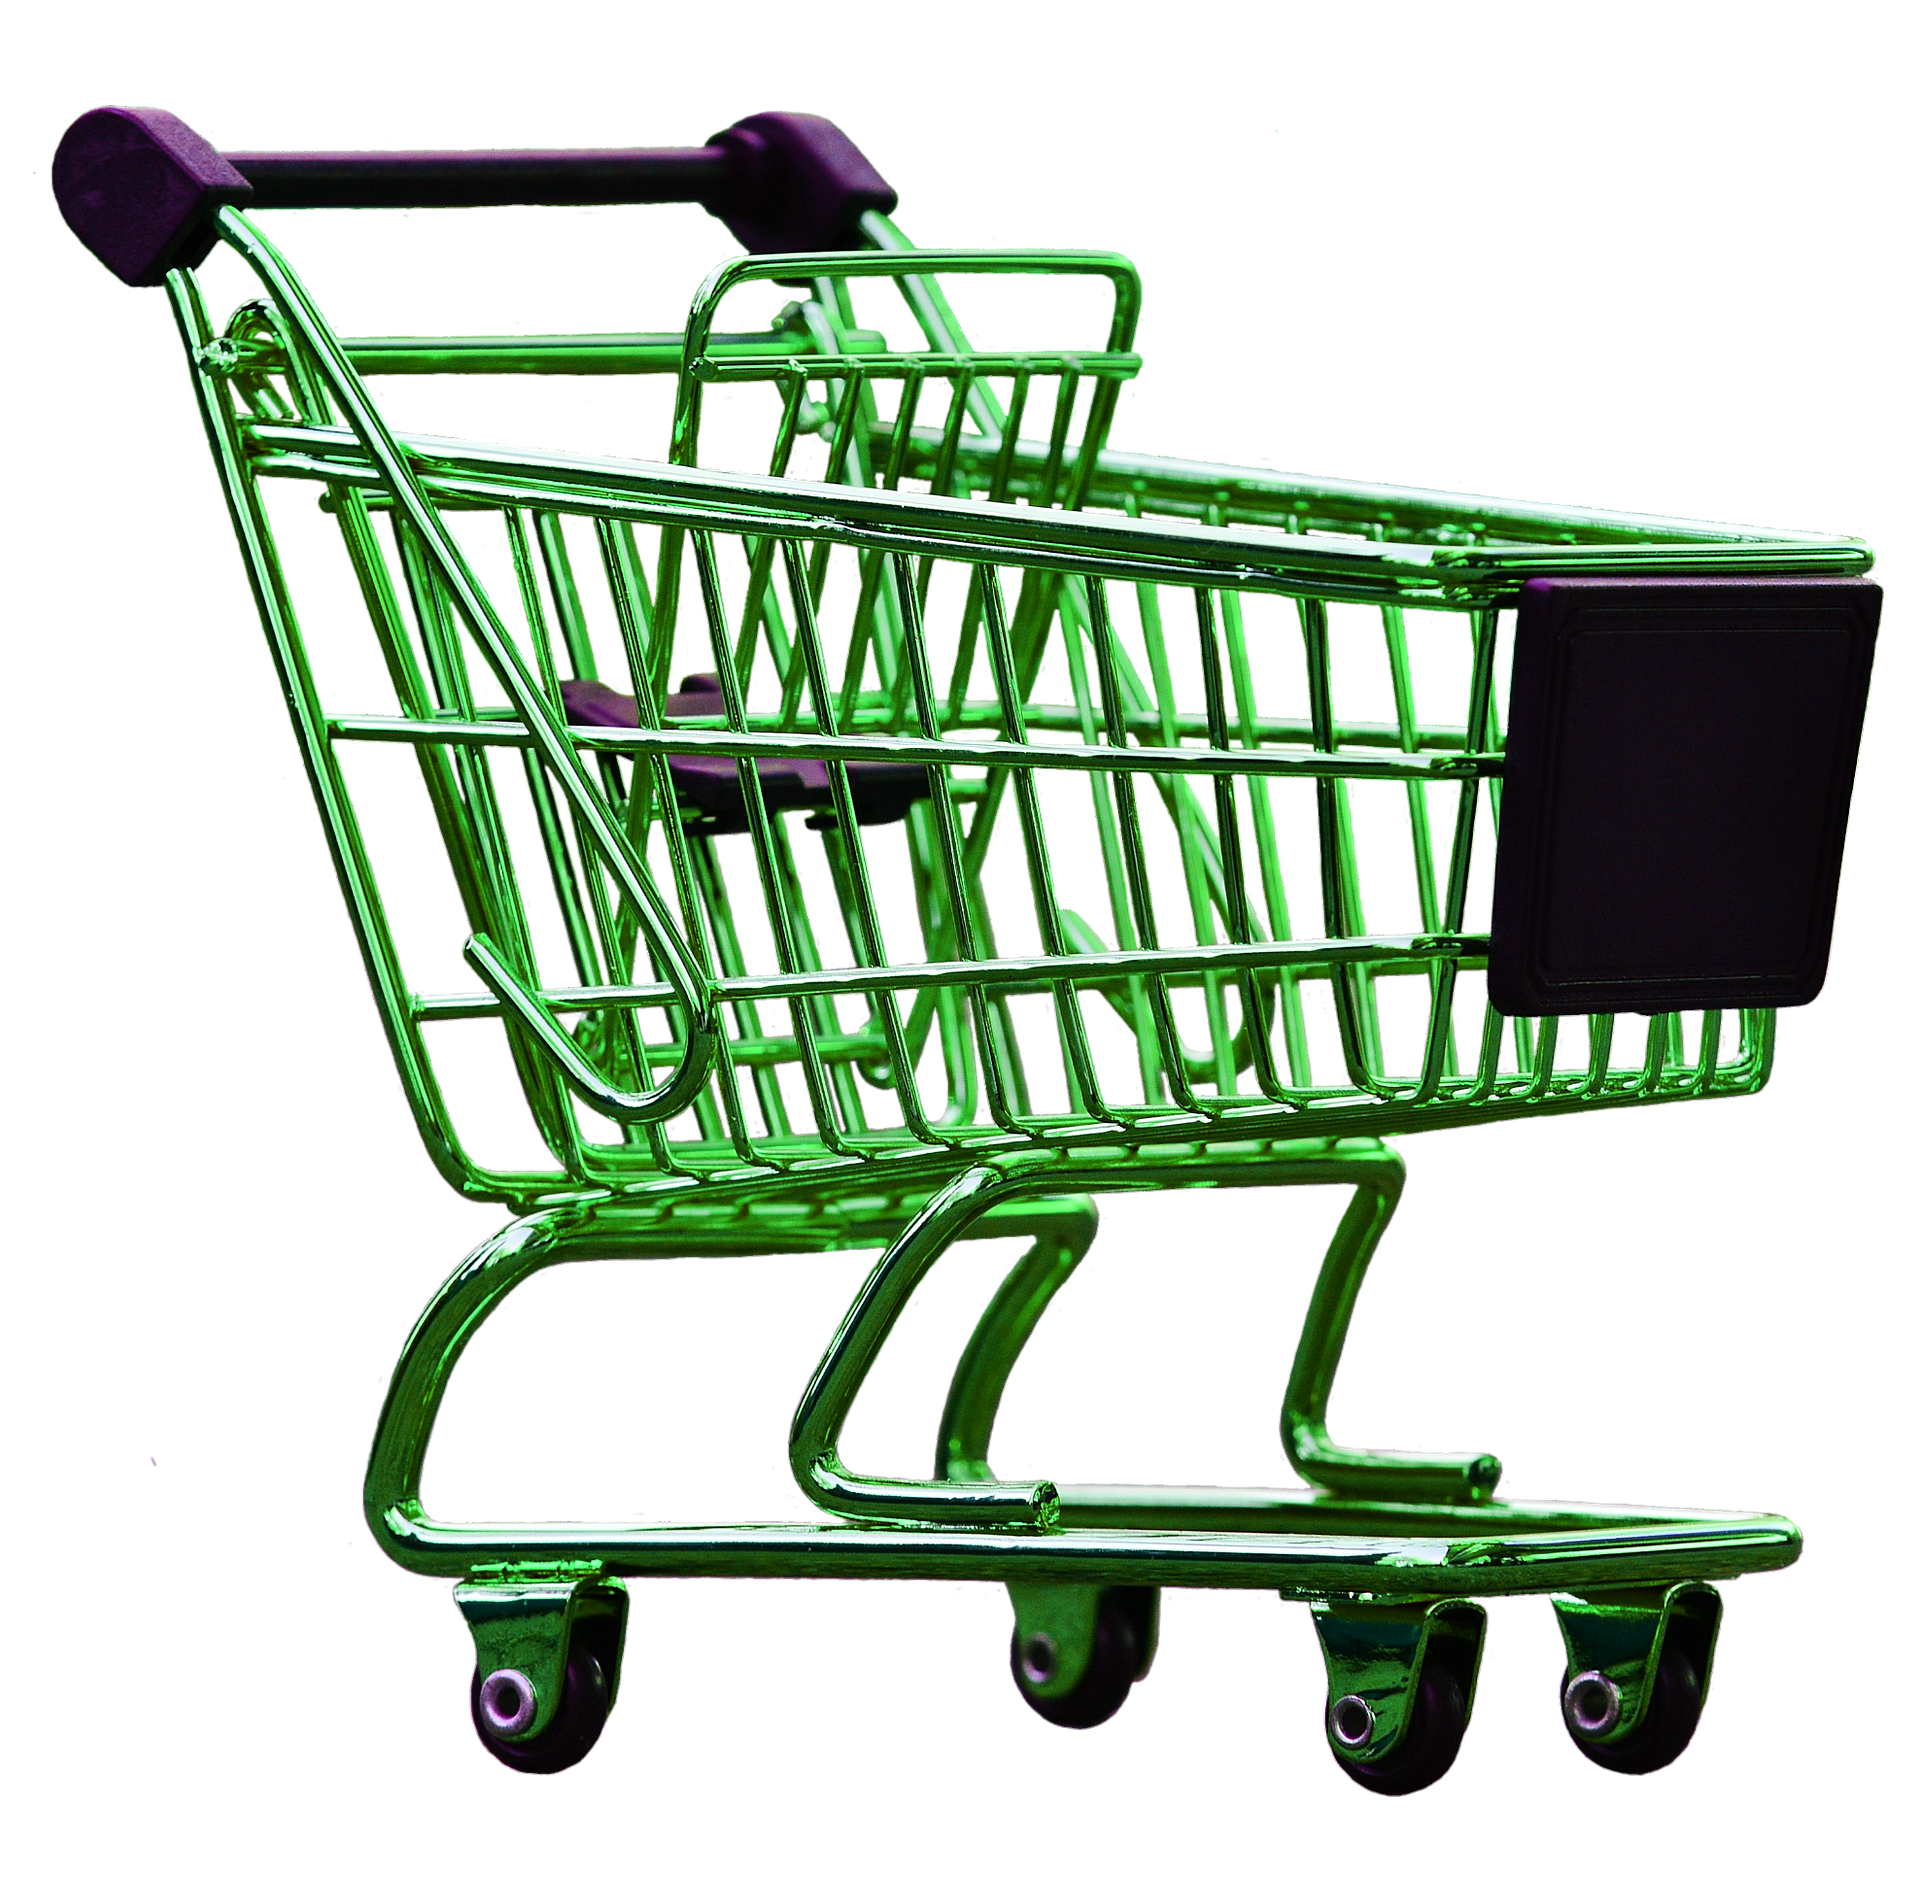 shopping-cart-2614160_1920